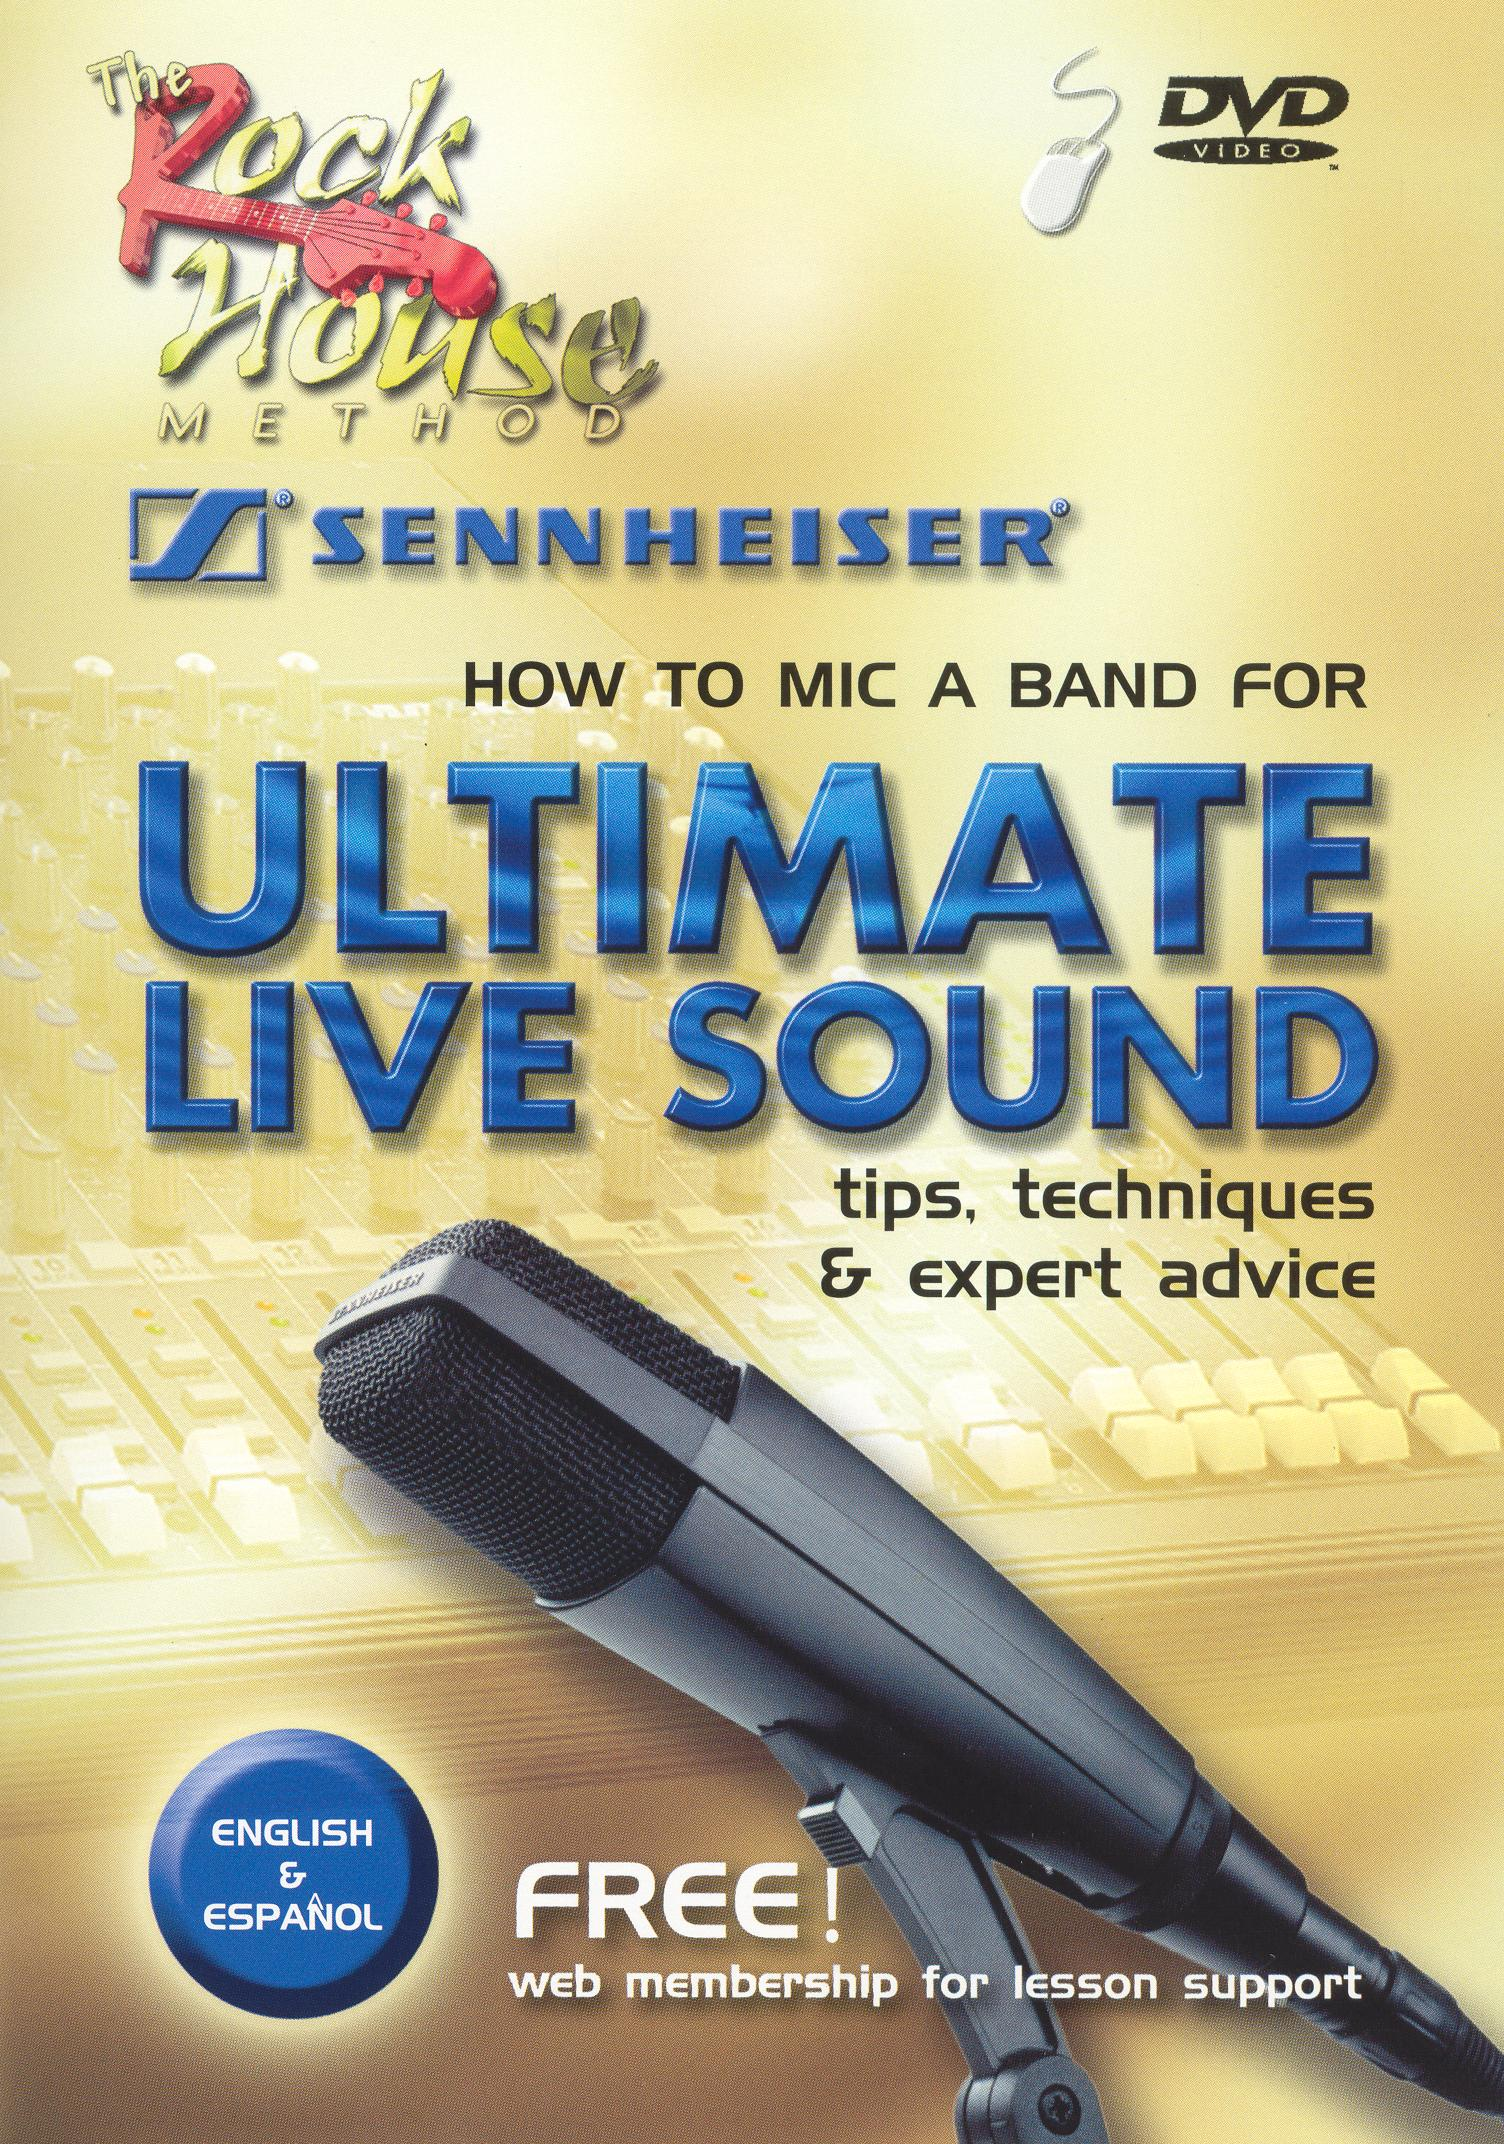 The Rock House Method: How To Mic a Band For Ultimate Live Sound